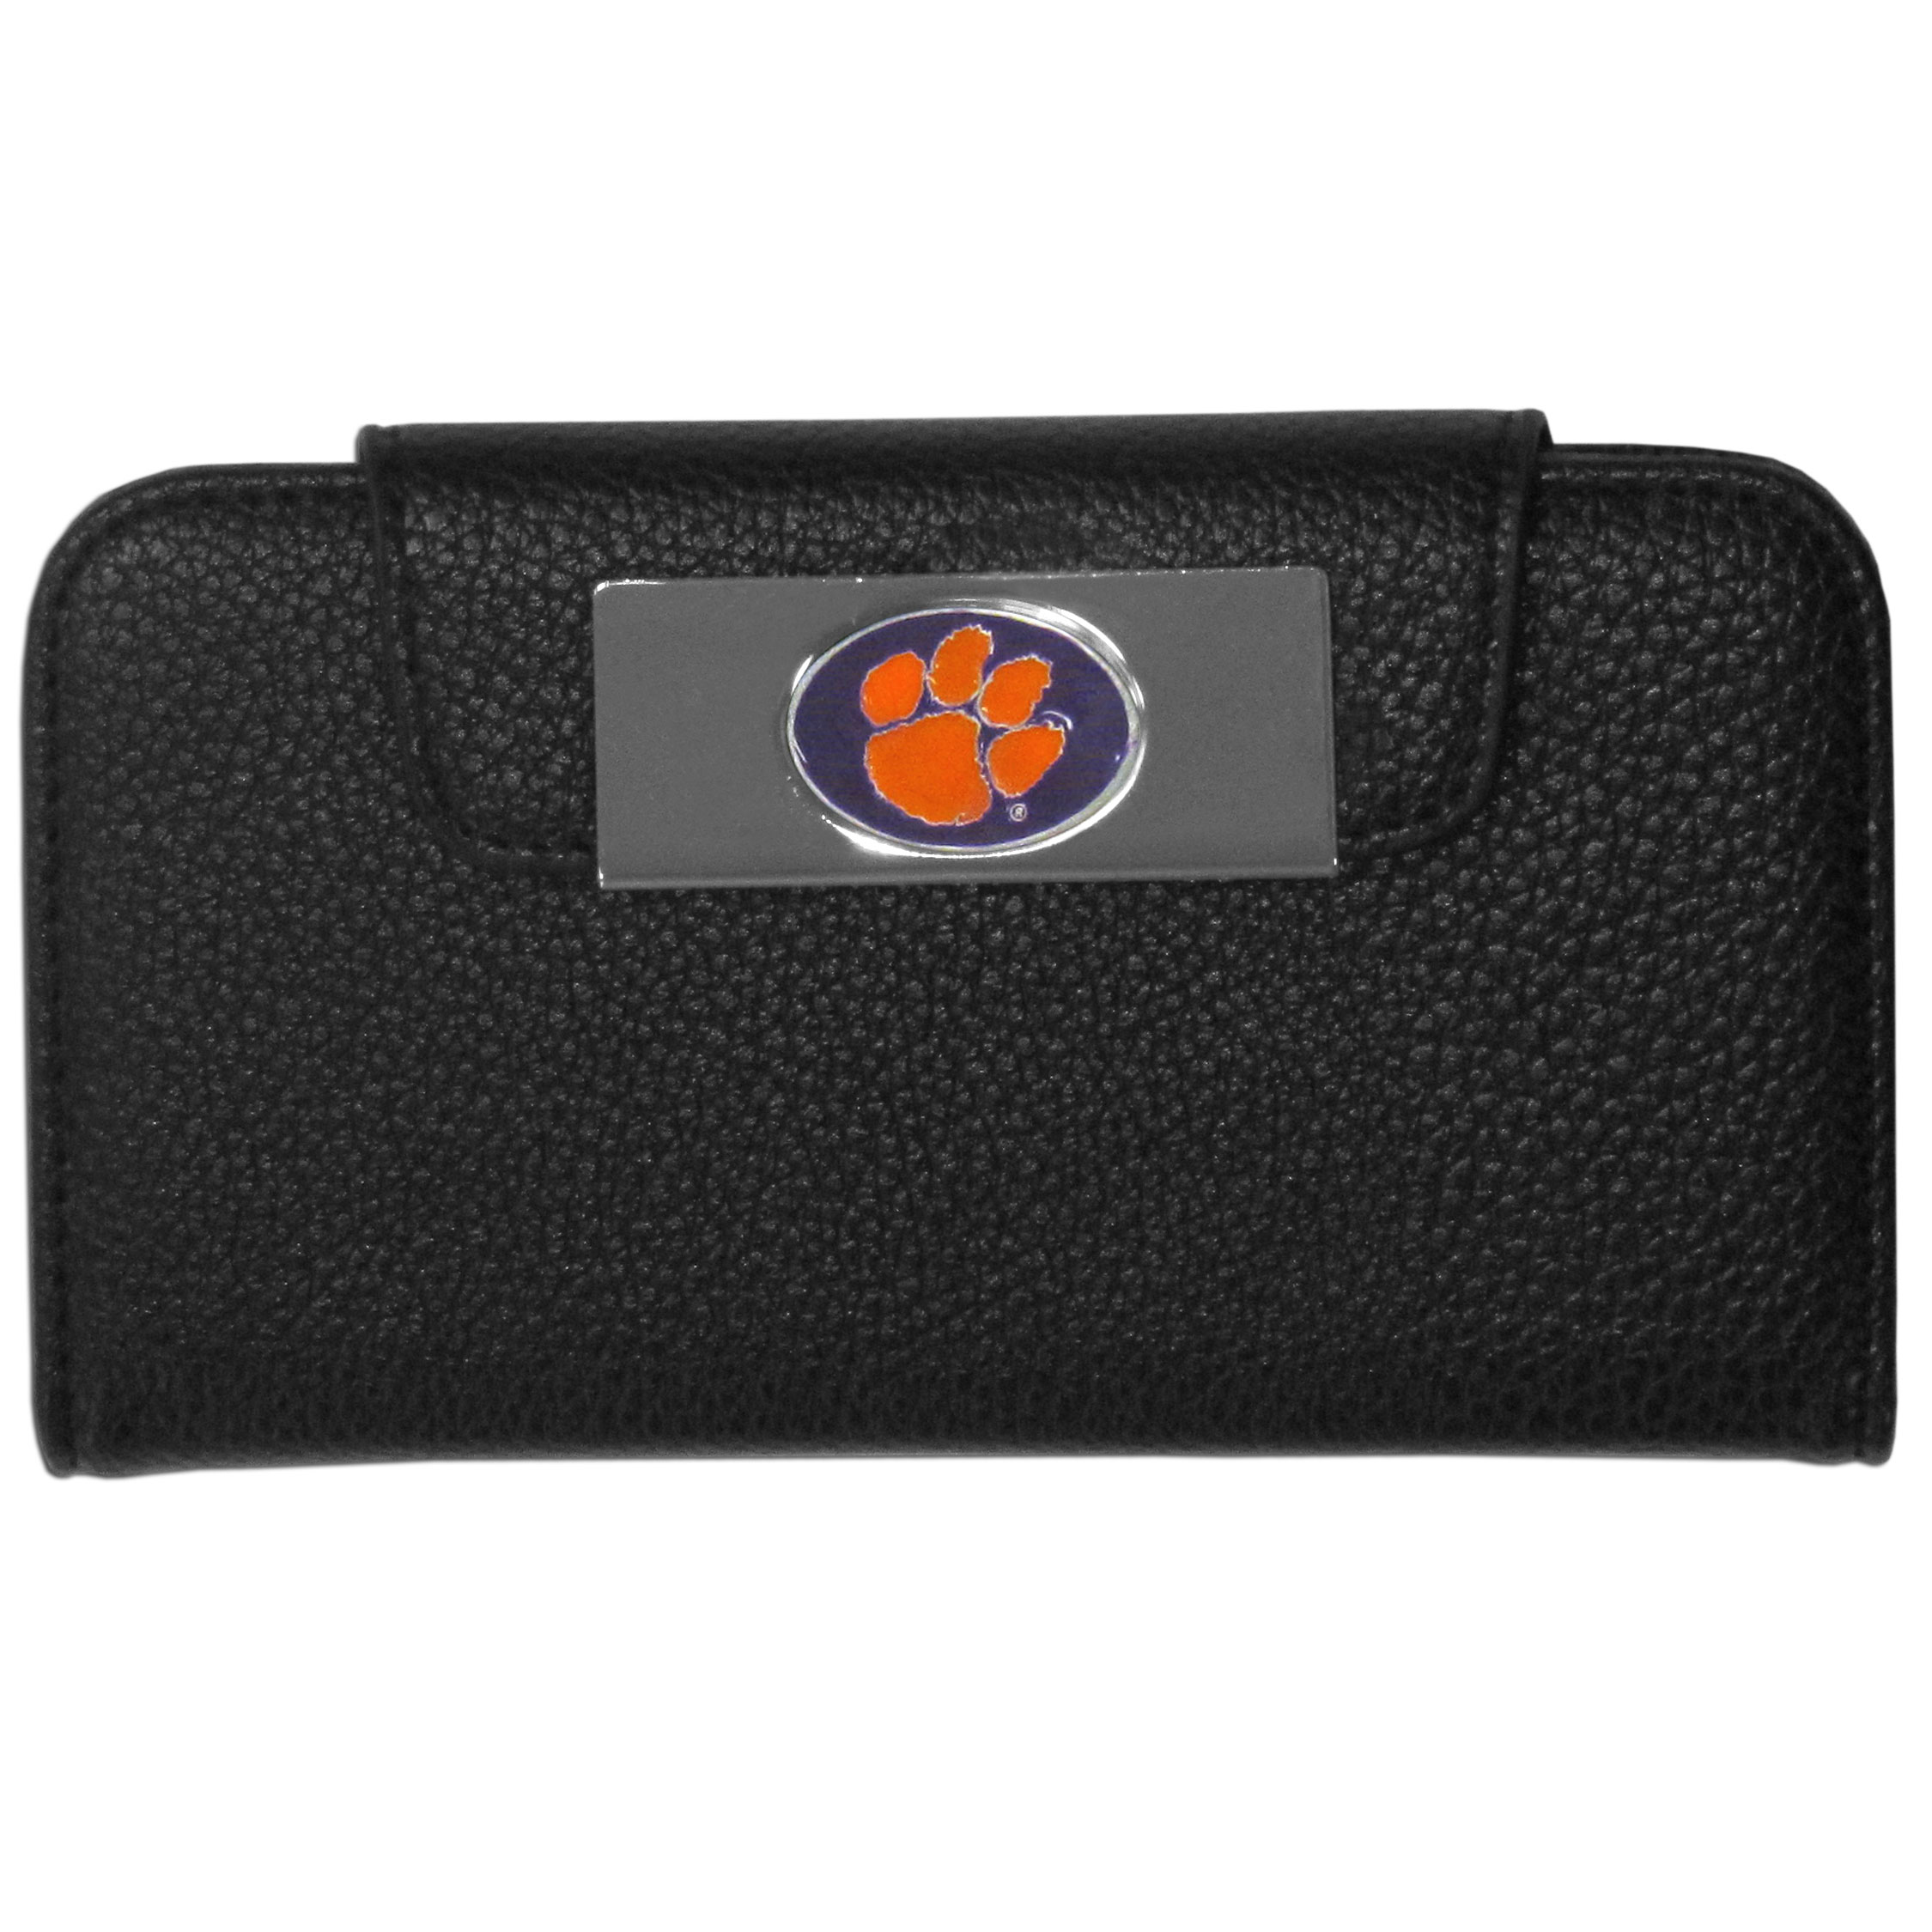 Clemson Tigers Samsung Galaxy S4 Wallet Case - This new & wildly popular case is ideal for those who like to travel light! The stylish case has an inner hard shell that securely holds your phone while allowing complete access to the phone's functionality. The flip cover has slots for credit cards, business cards and identification. The magnetic flip cover has a metal Clemson Tigers emblem on a high polish chrome backing. Fits the Samsung Galaxy S4